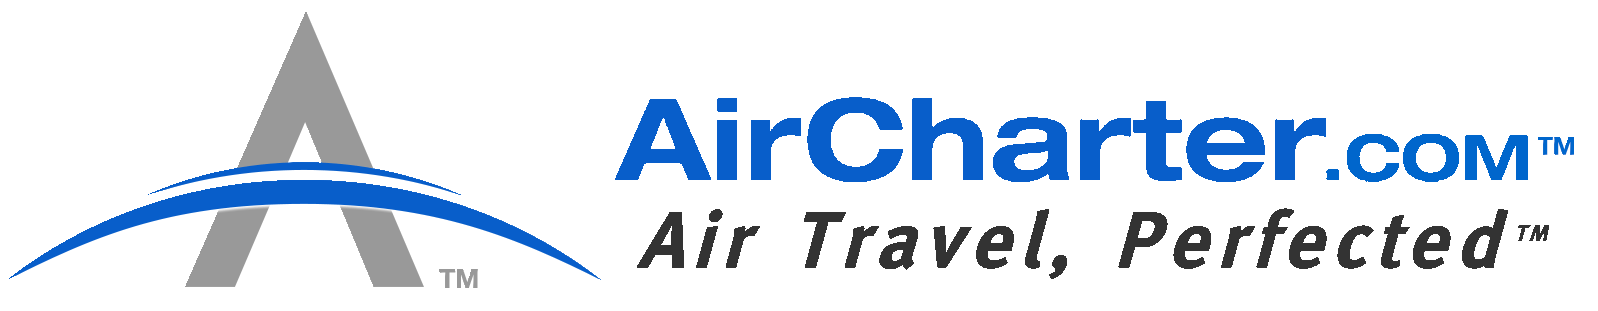 Air Charter Services – Private Jet, Executive Jets, AirCharter, Jet Charter with Guaranteed prices